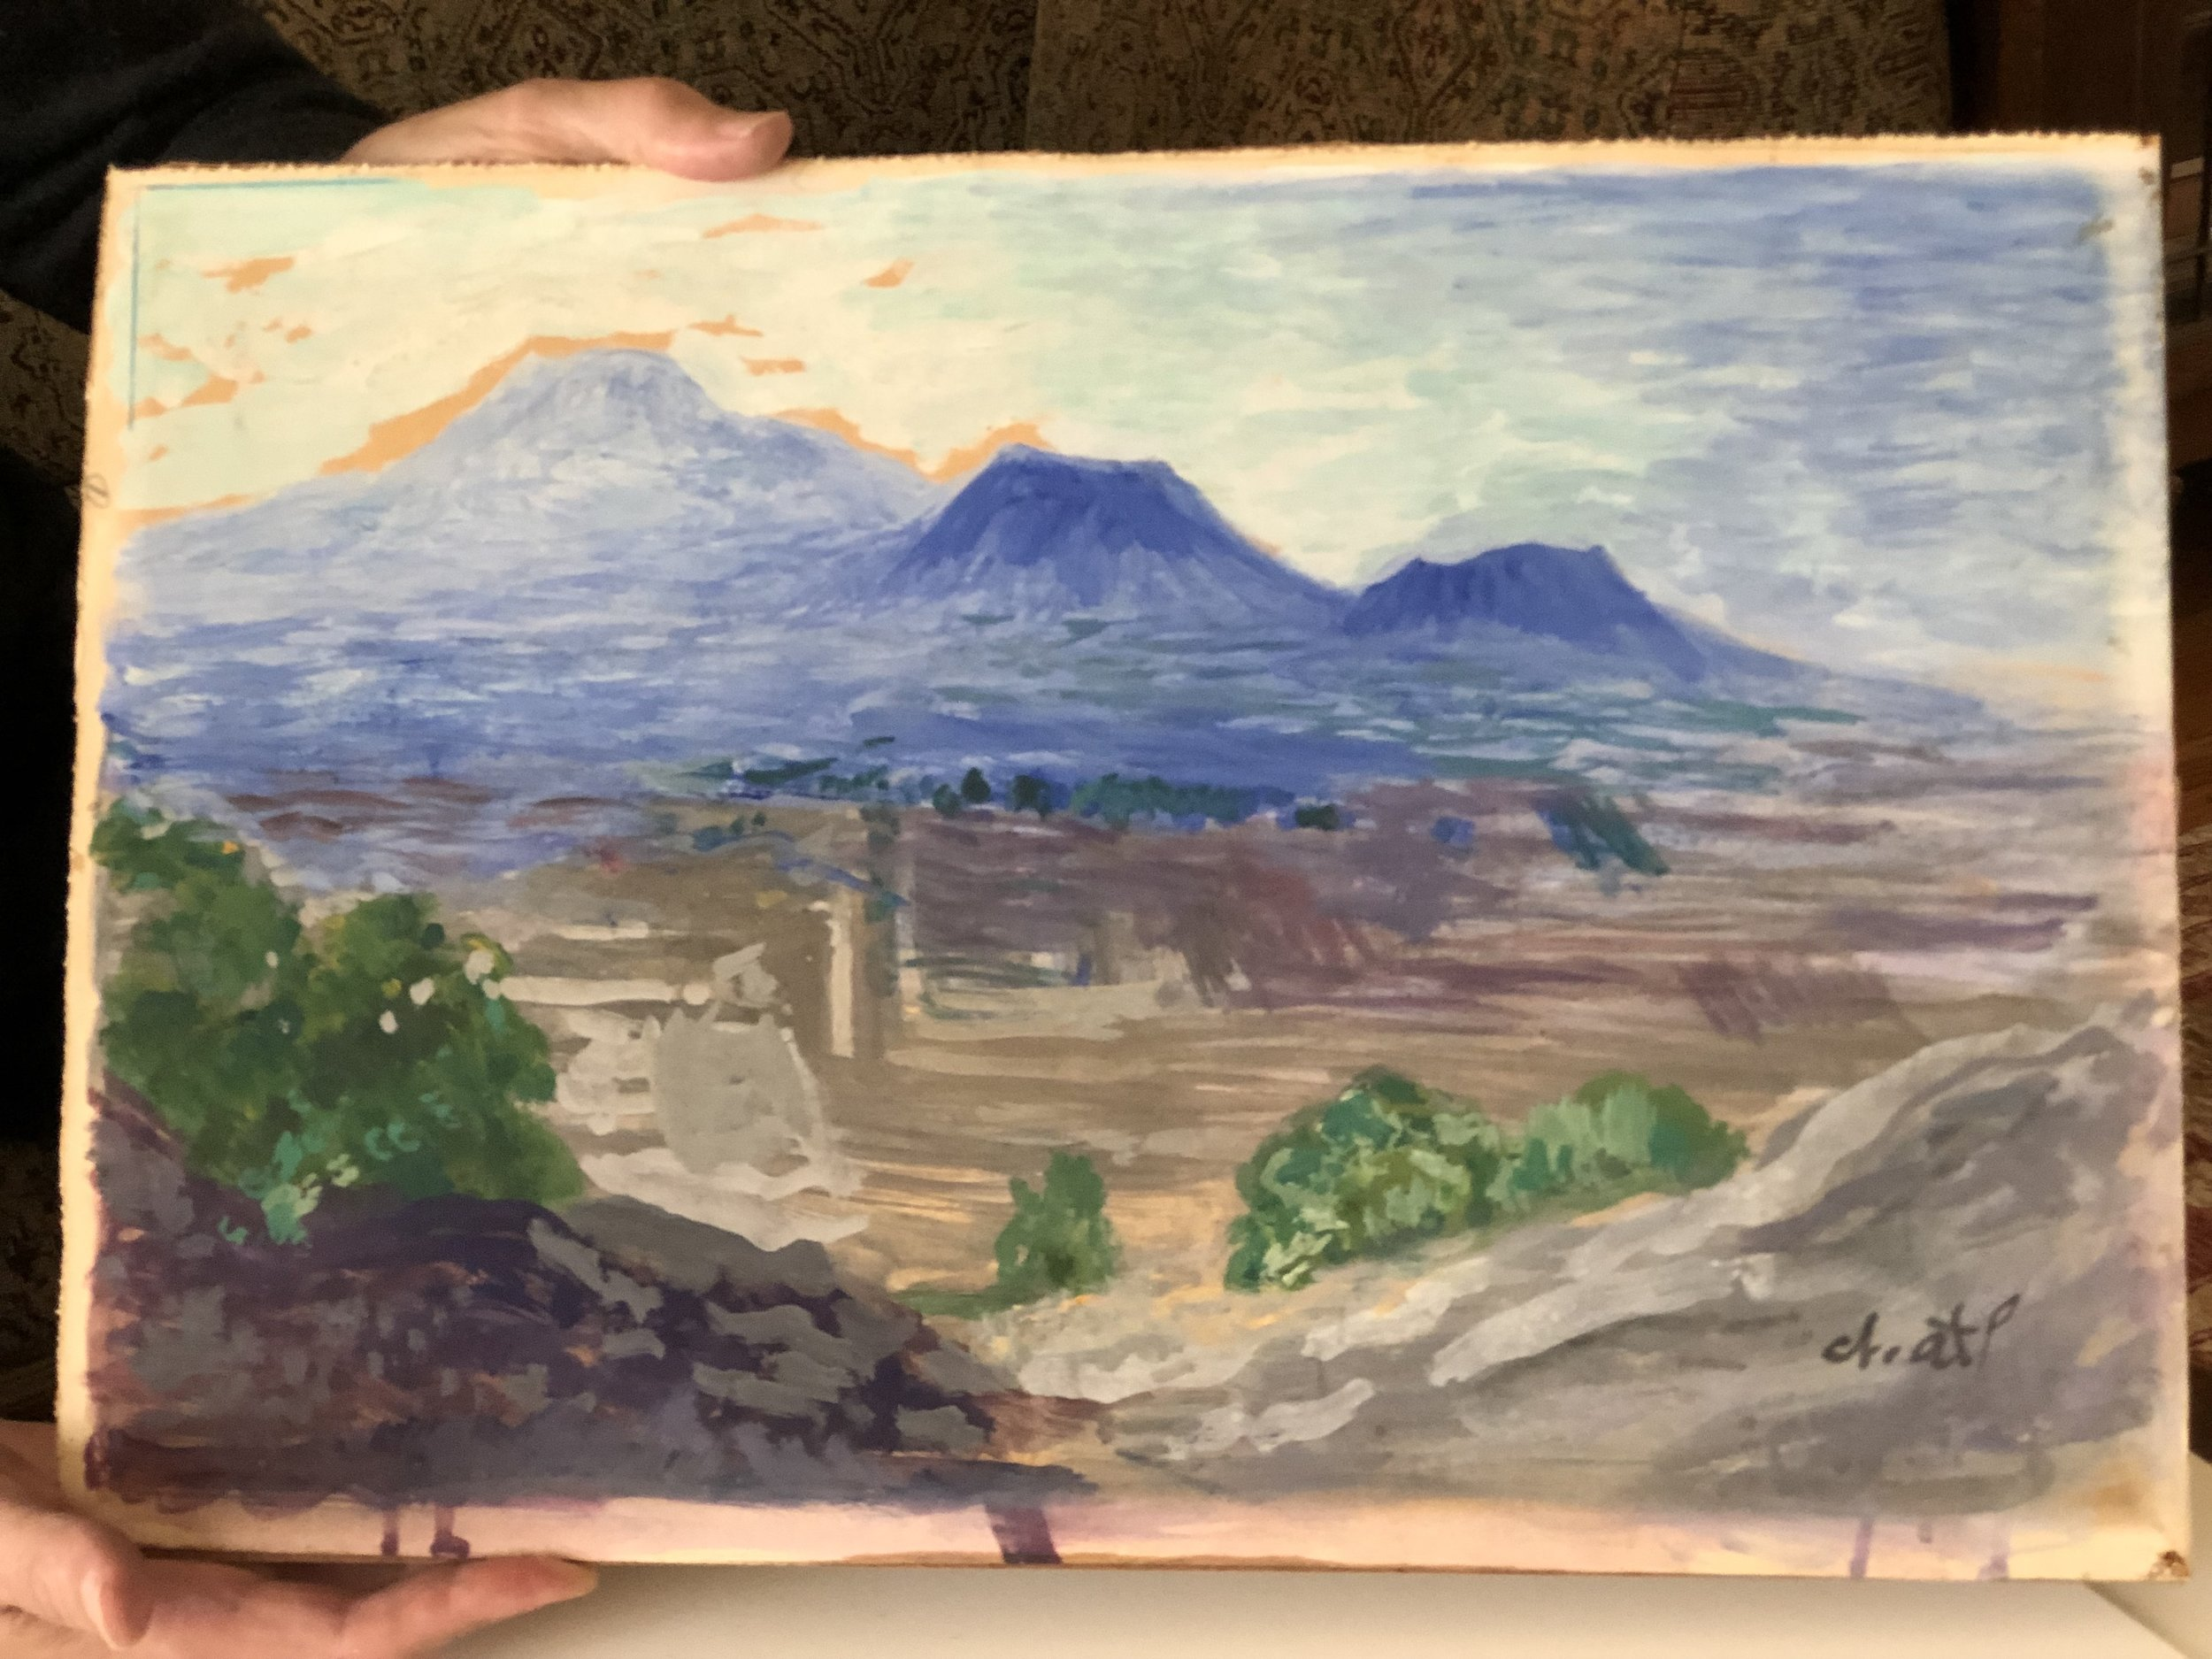 landscape painting by Dr. Atl